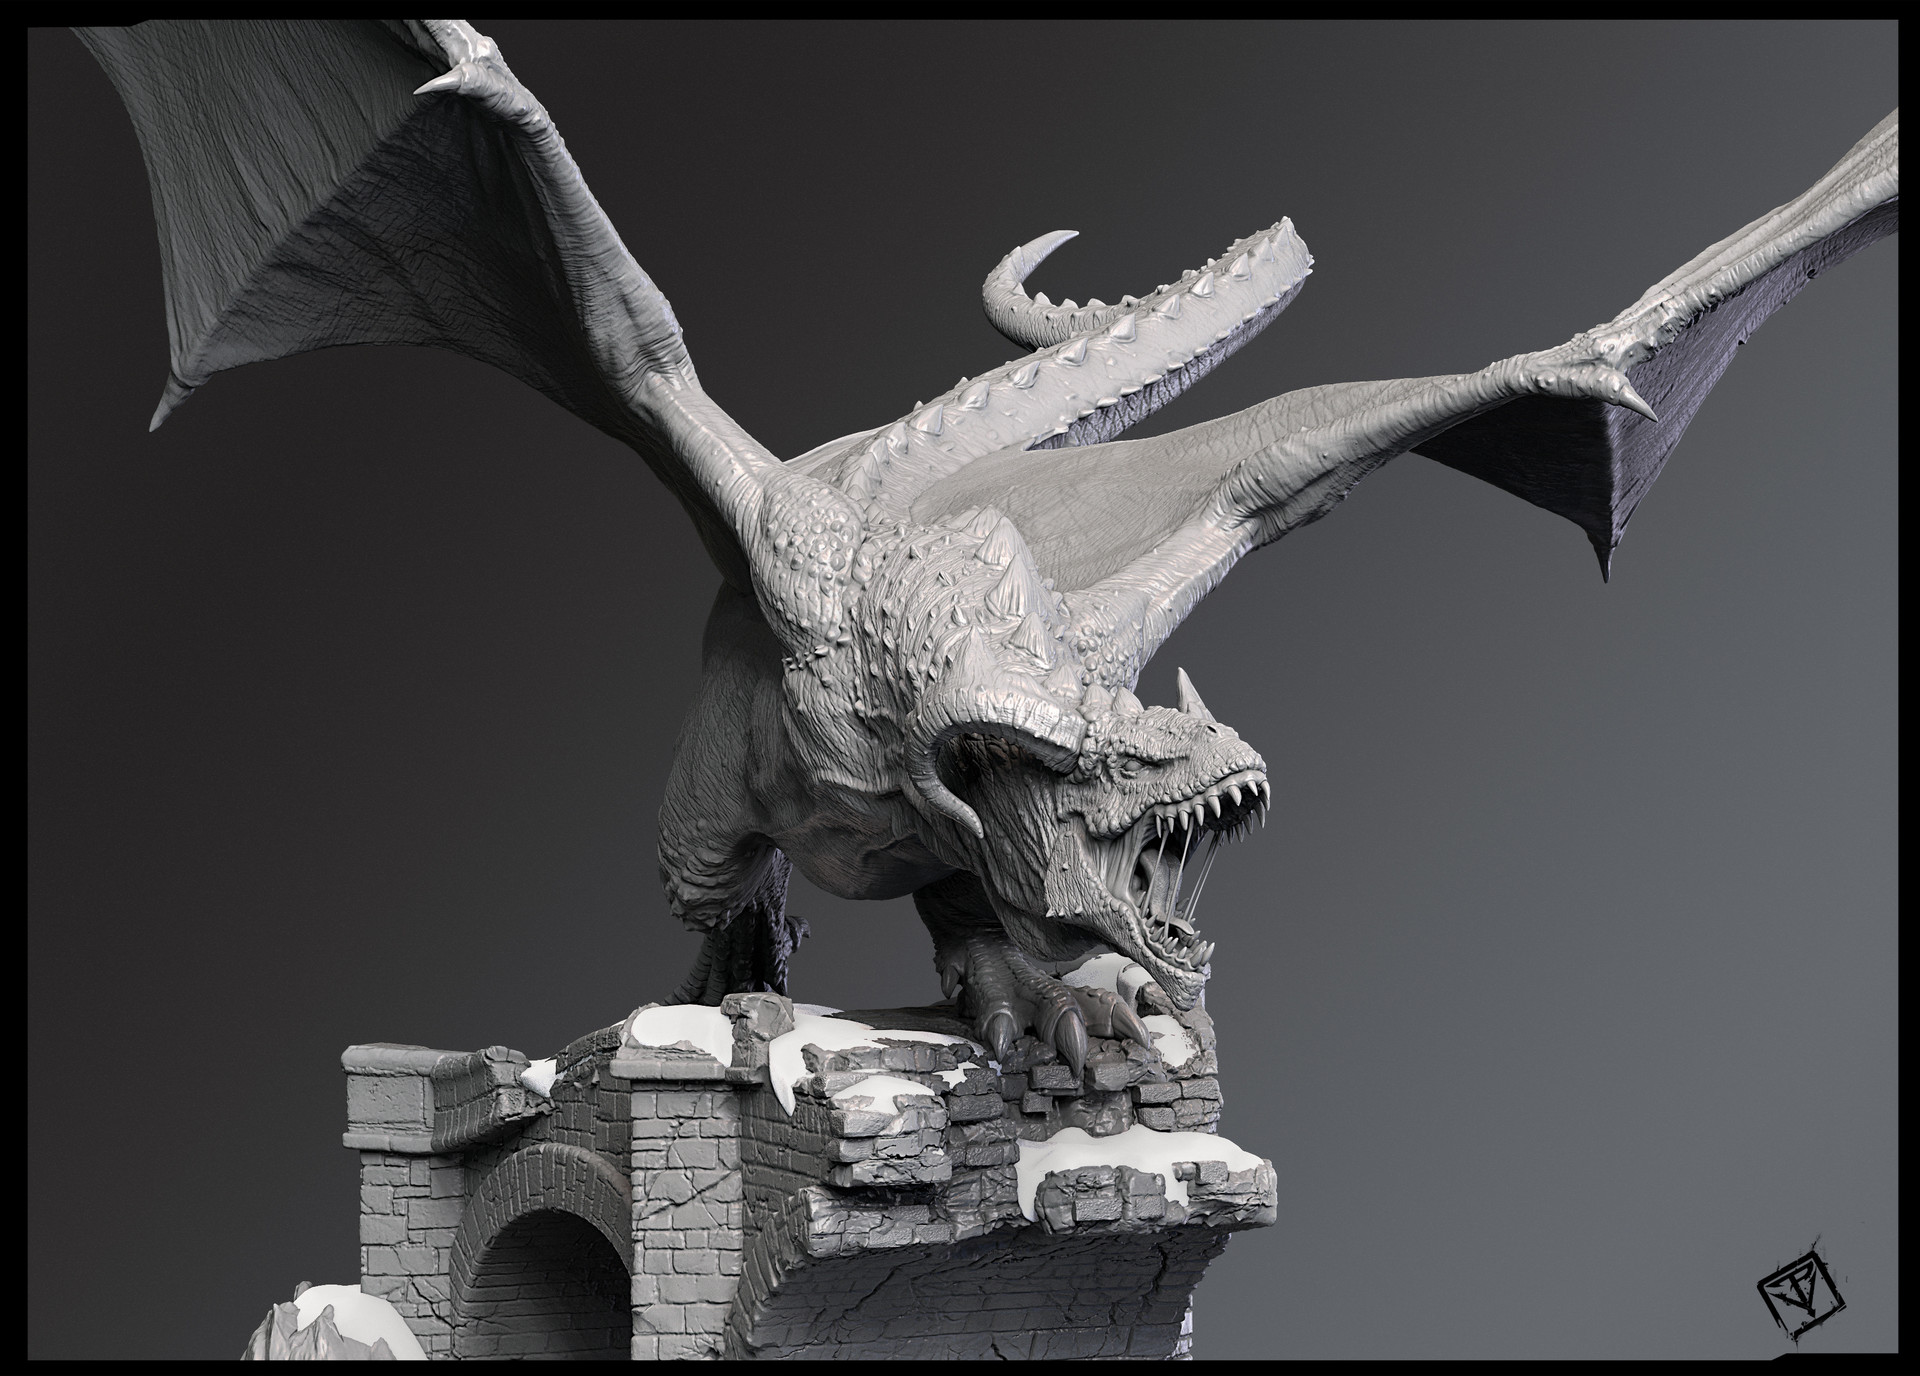 Pablo vicentin new dragon scene 09